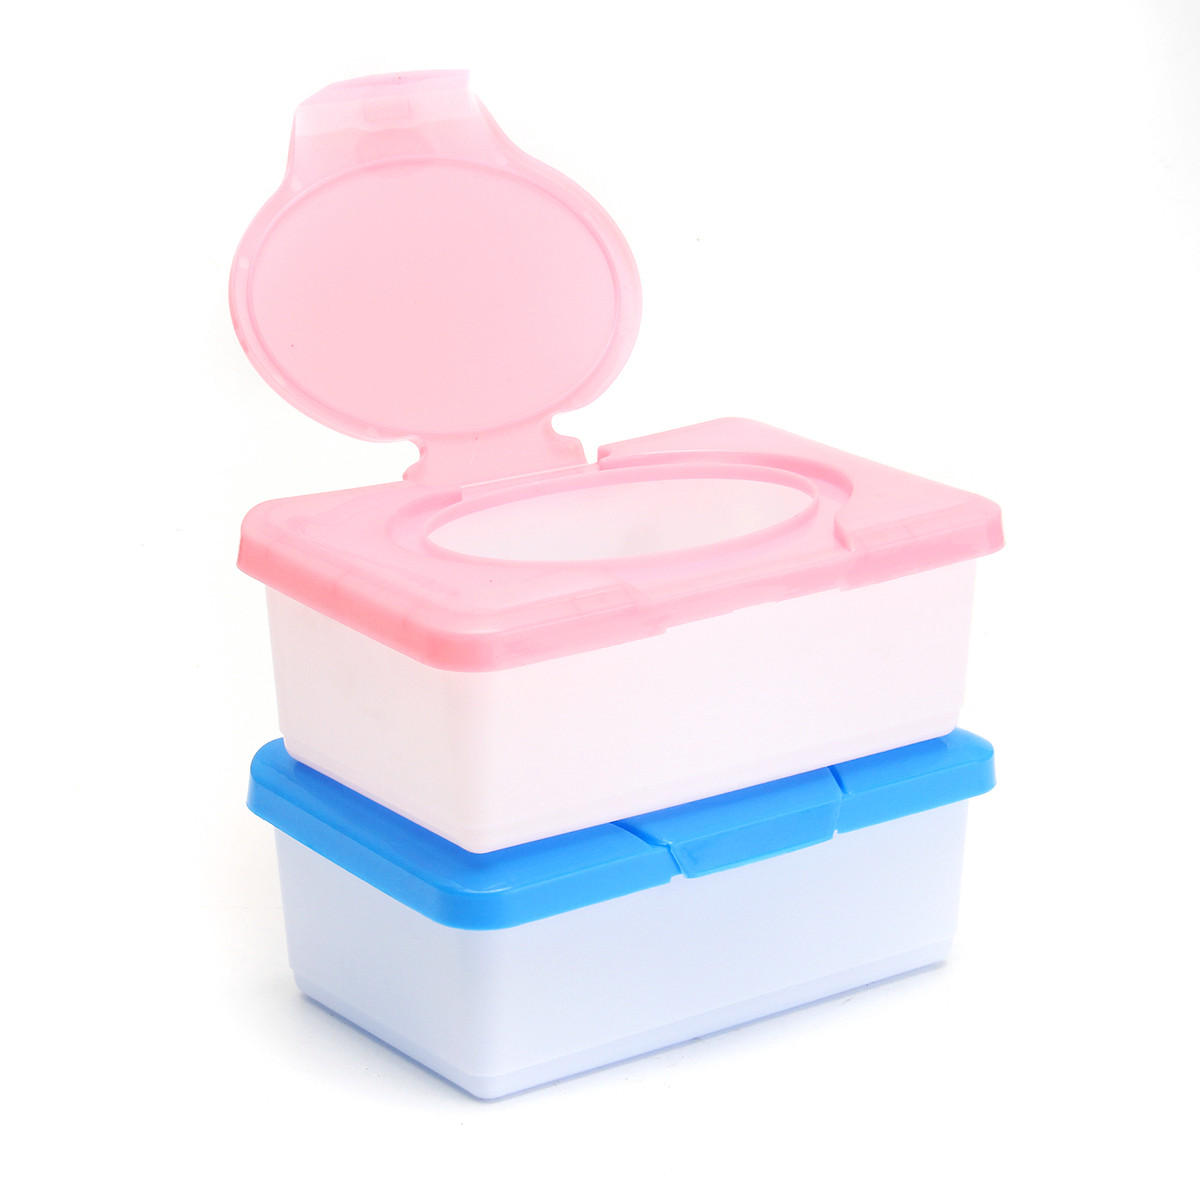 Wet Tissue Box Plastic Case Real Tissue Case Baby Wipes Press Pop-up Design Home Tissue Holder Accessories - Pink - FLJ CORPORATIONS